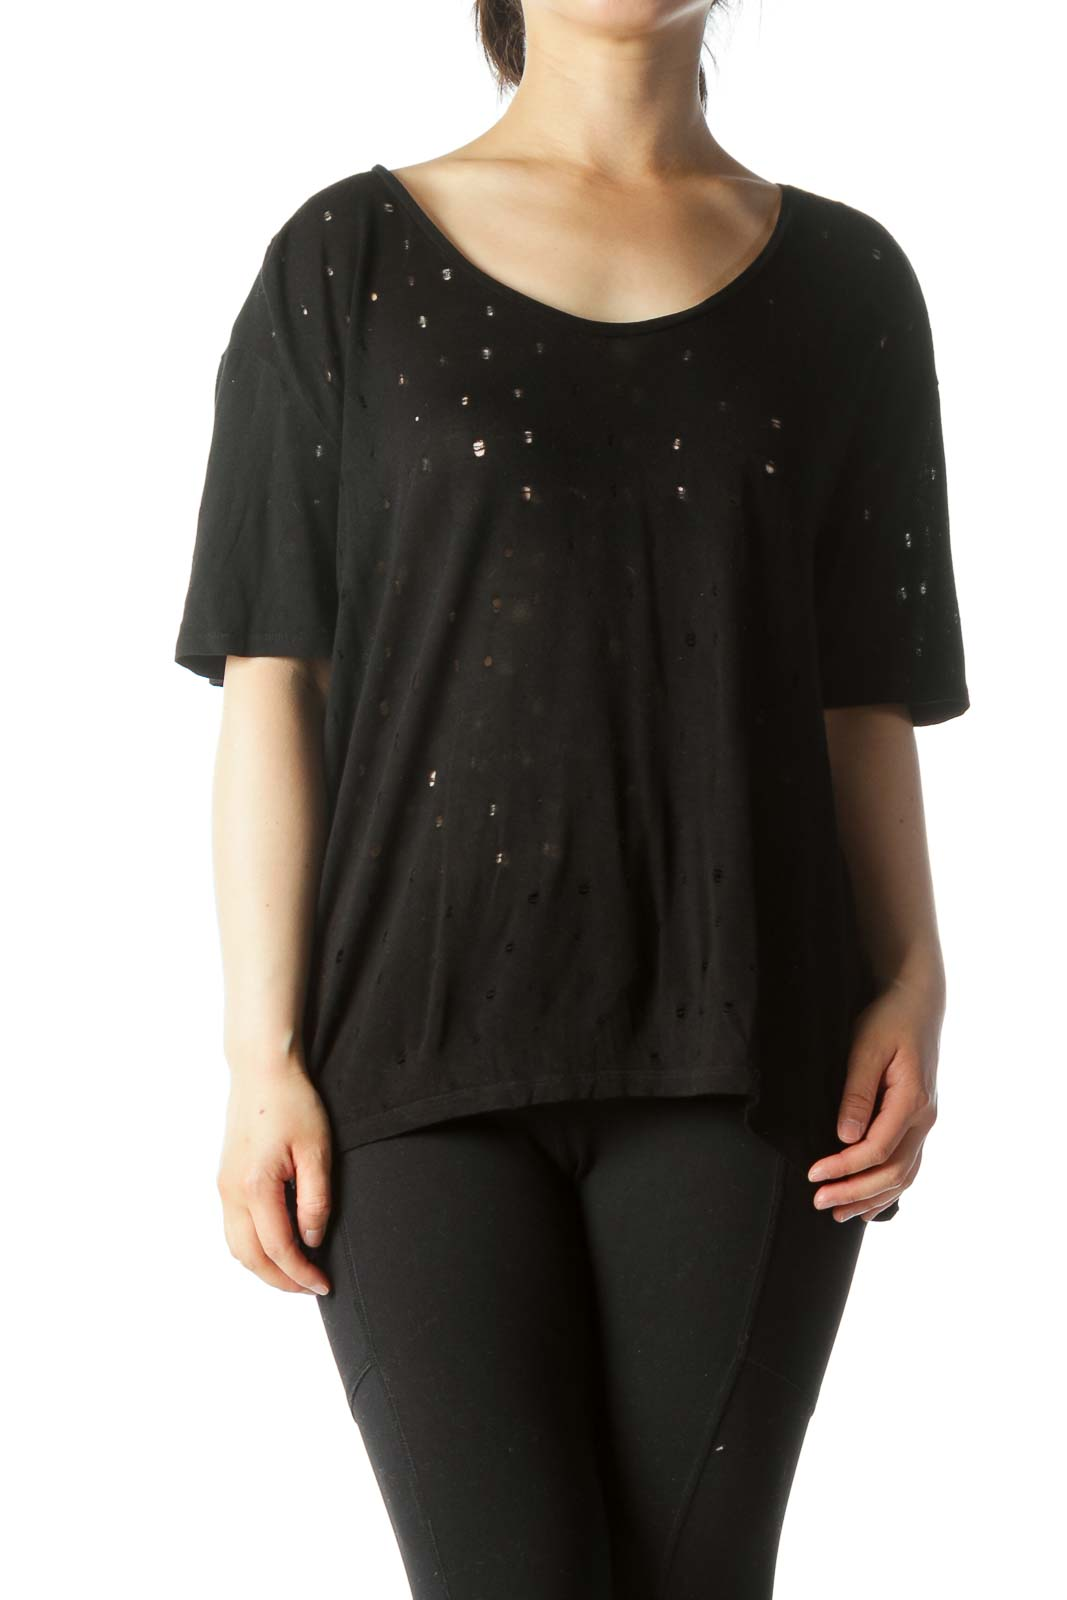 Black Cut-Outs See Through T-Shirt Front